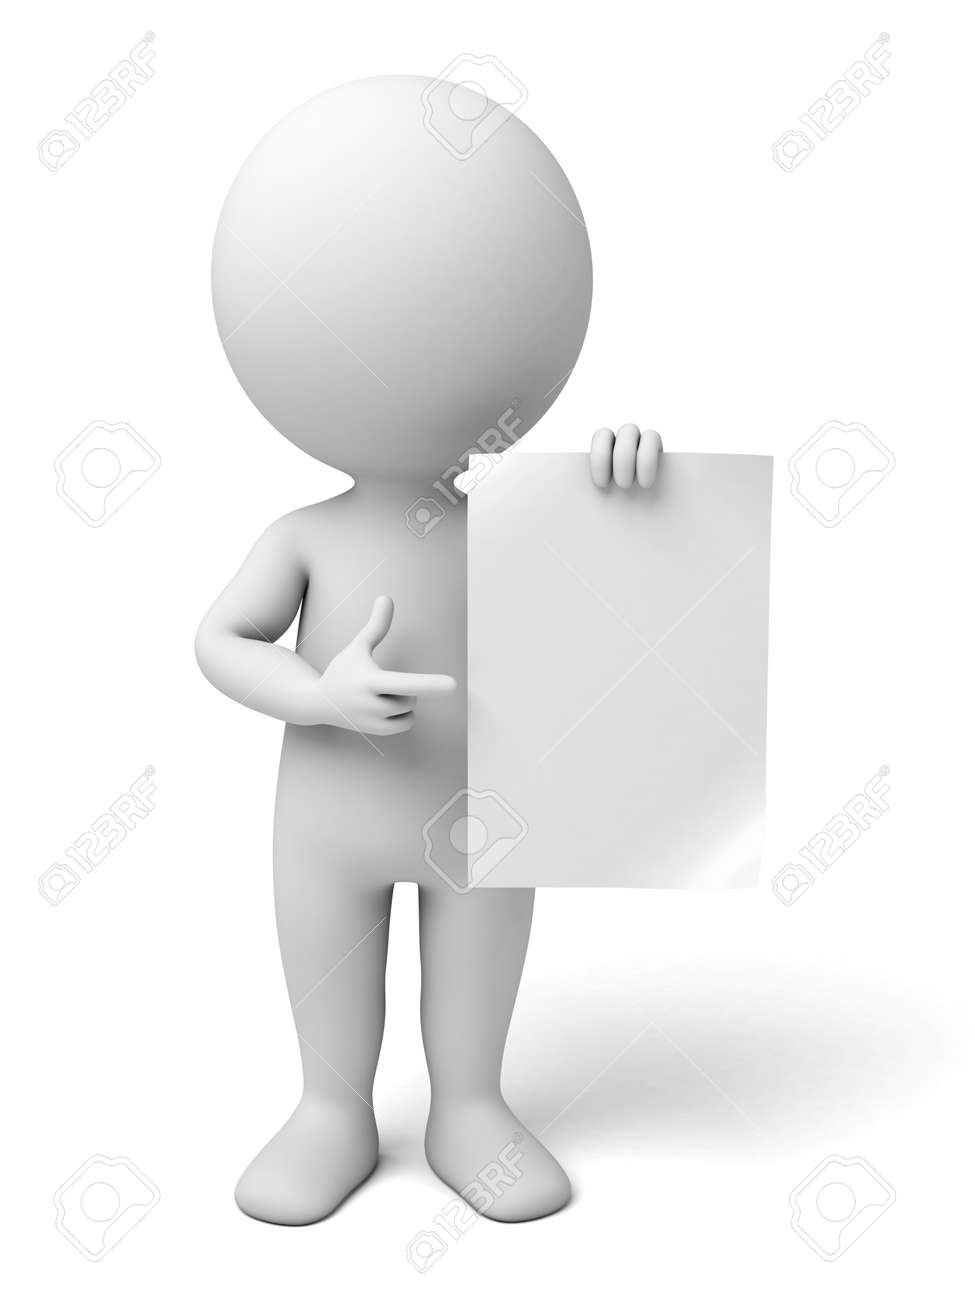 3d people with an empty paper in hands. 3d image. Isolated white background. - 42646583